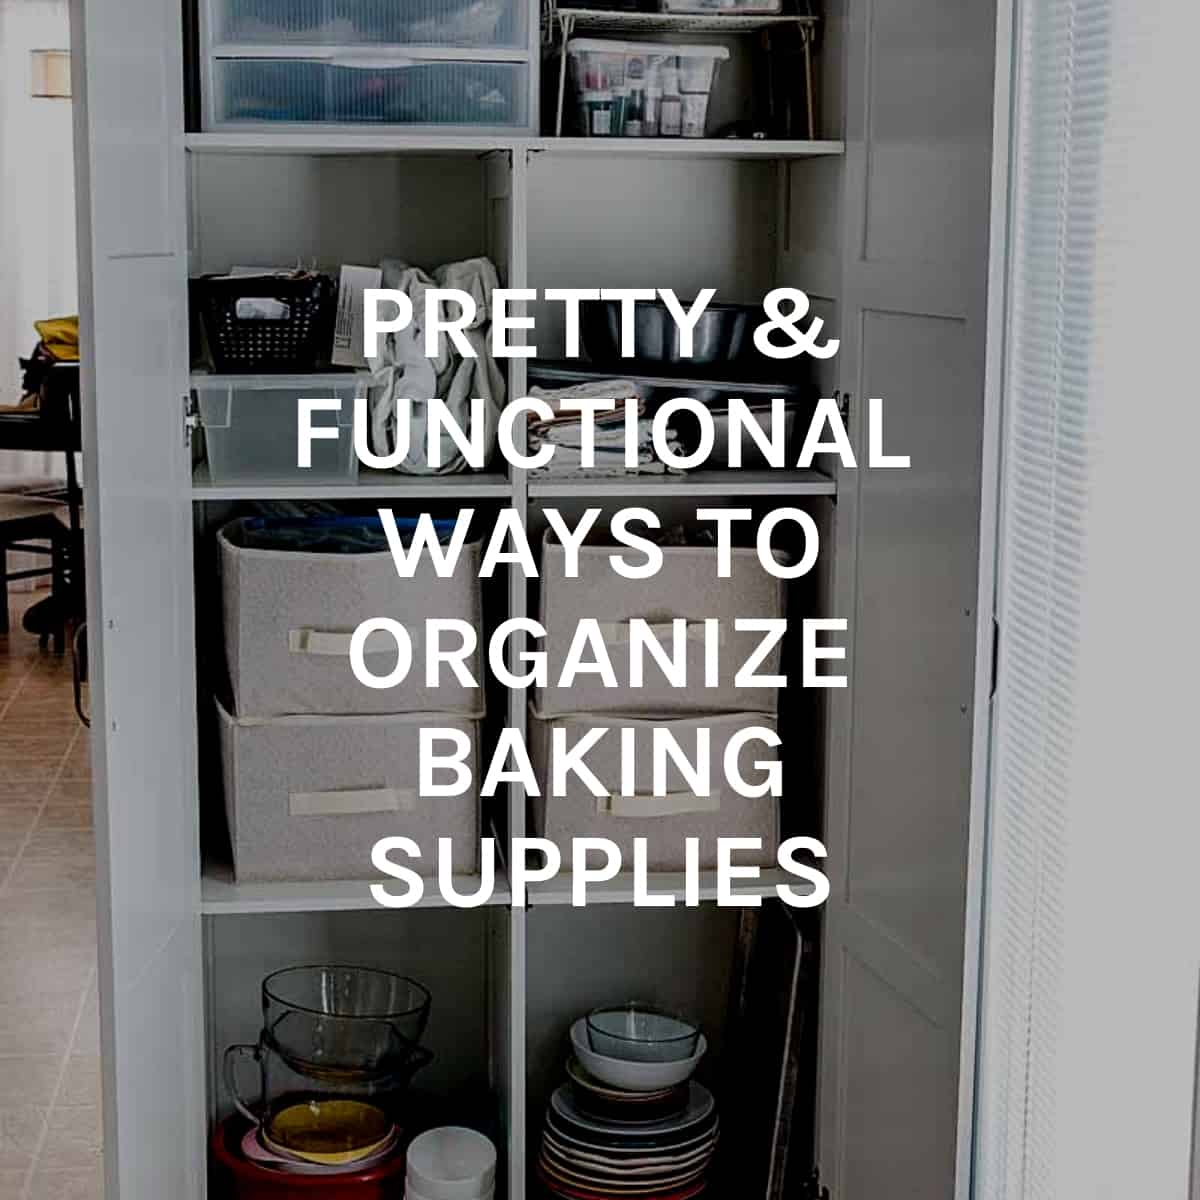 95 ways to organize featured image